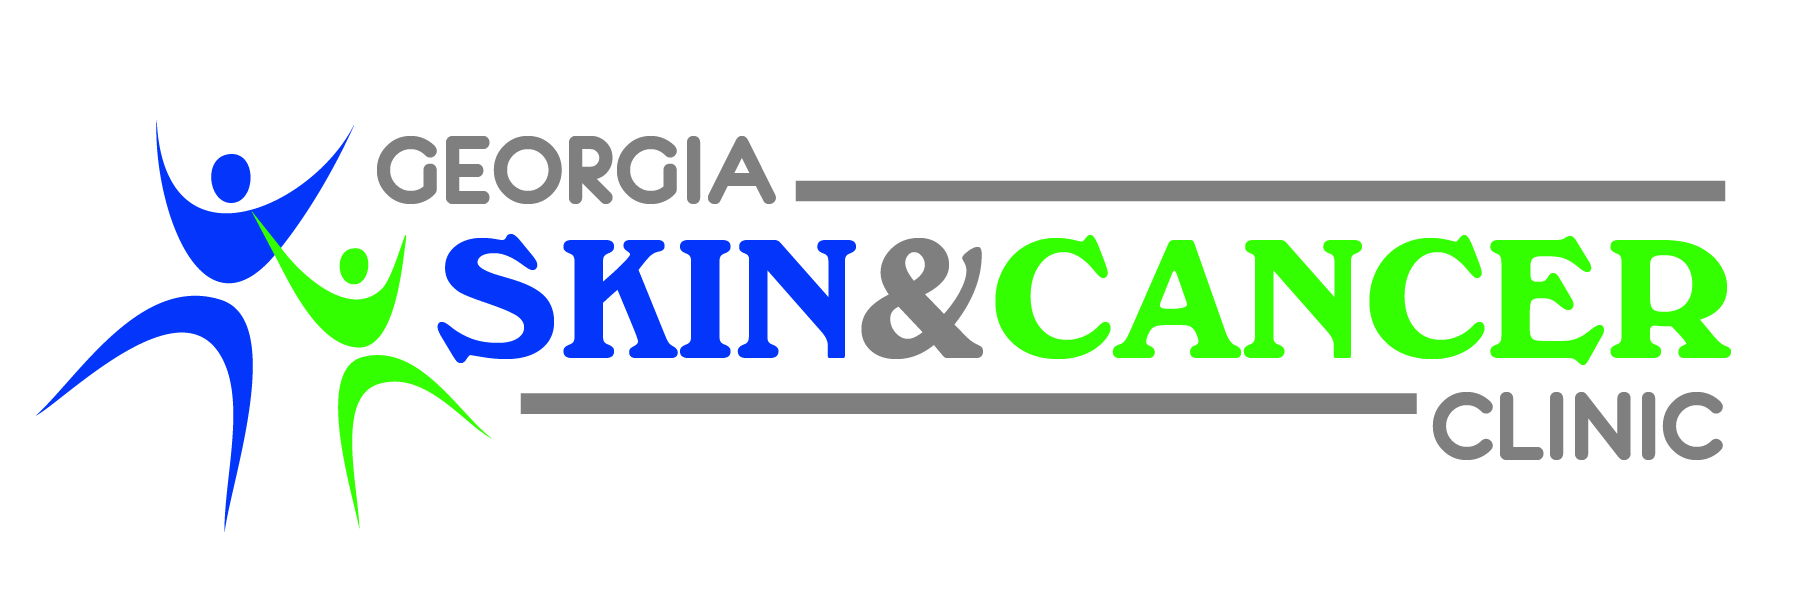 Georgia Skin and Cancer Clinic